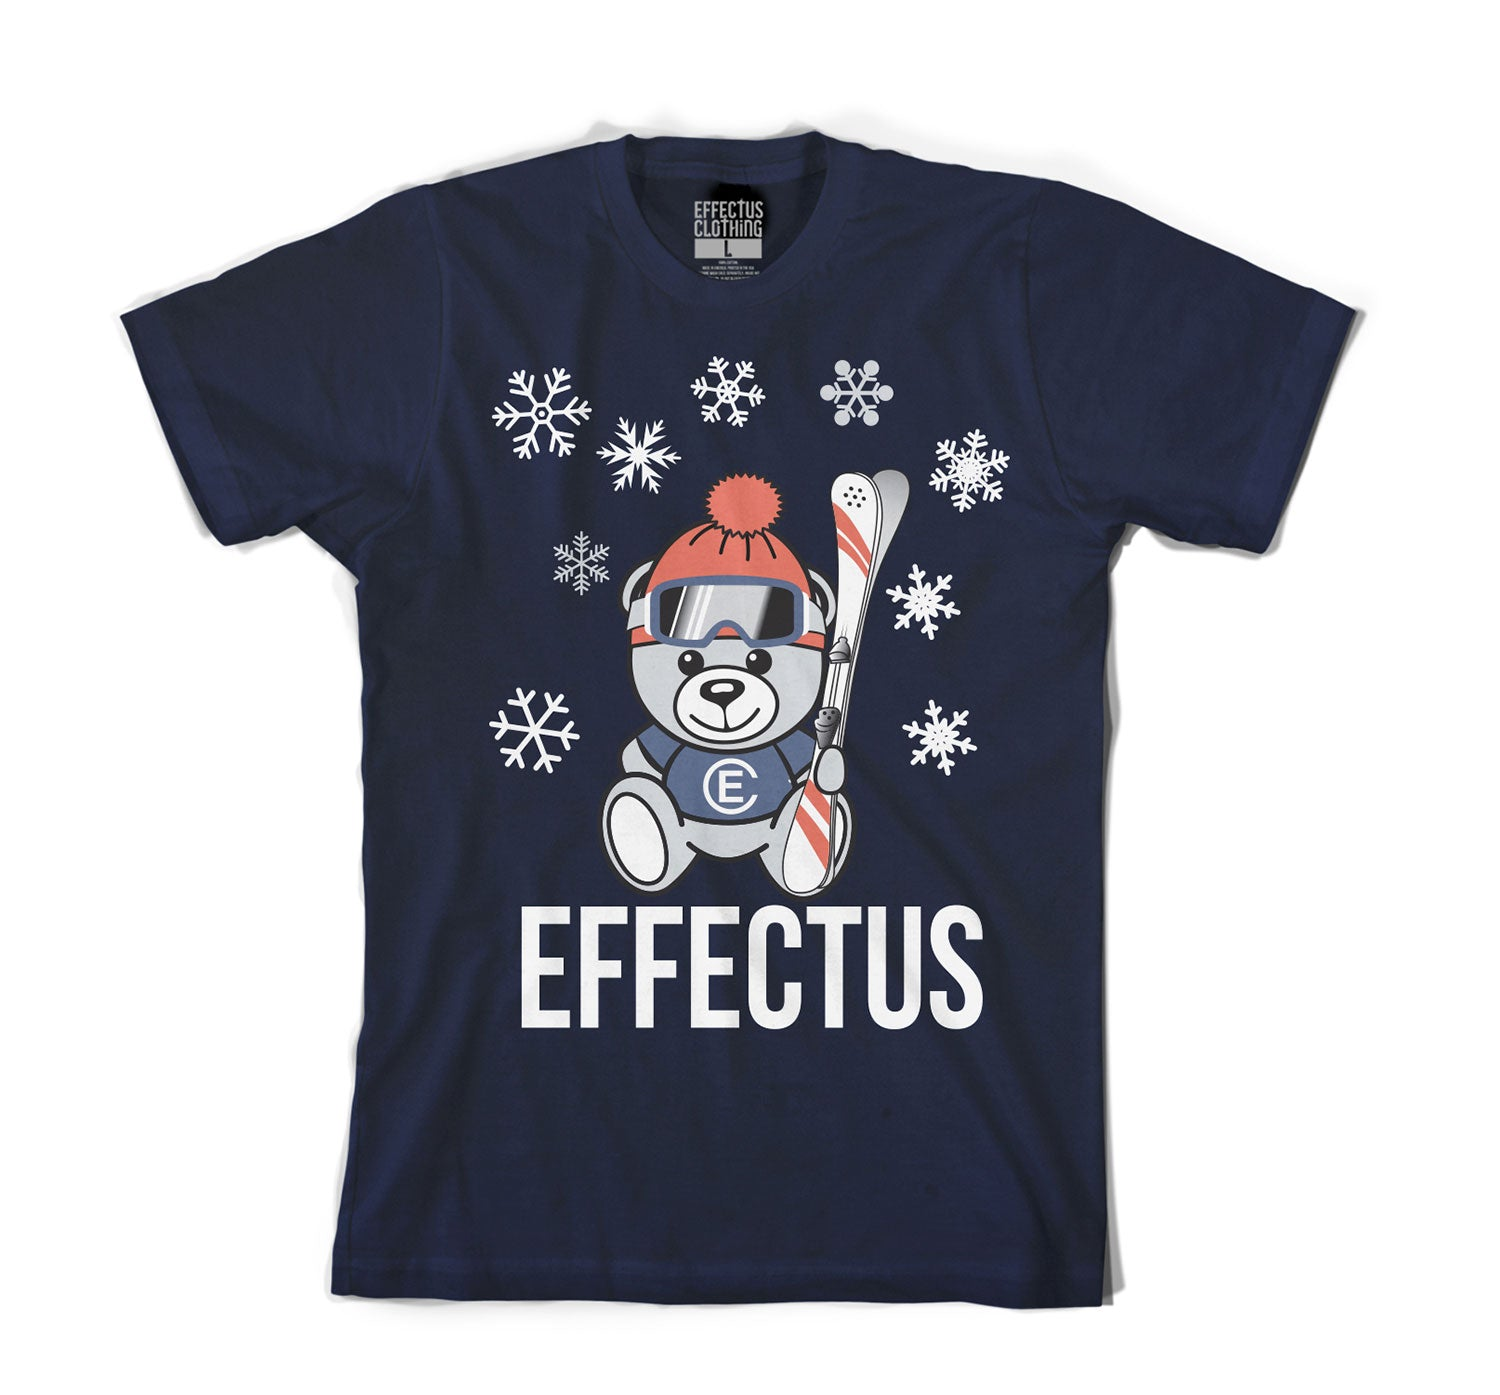 Jordan 4 Loyal Blue Effectus Bear Shirt